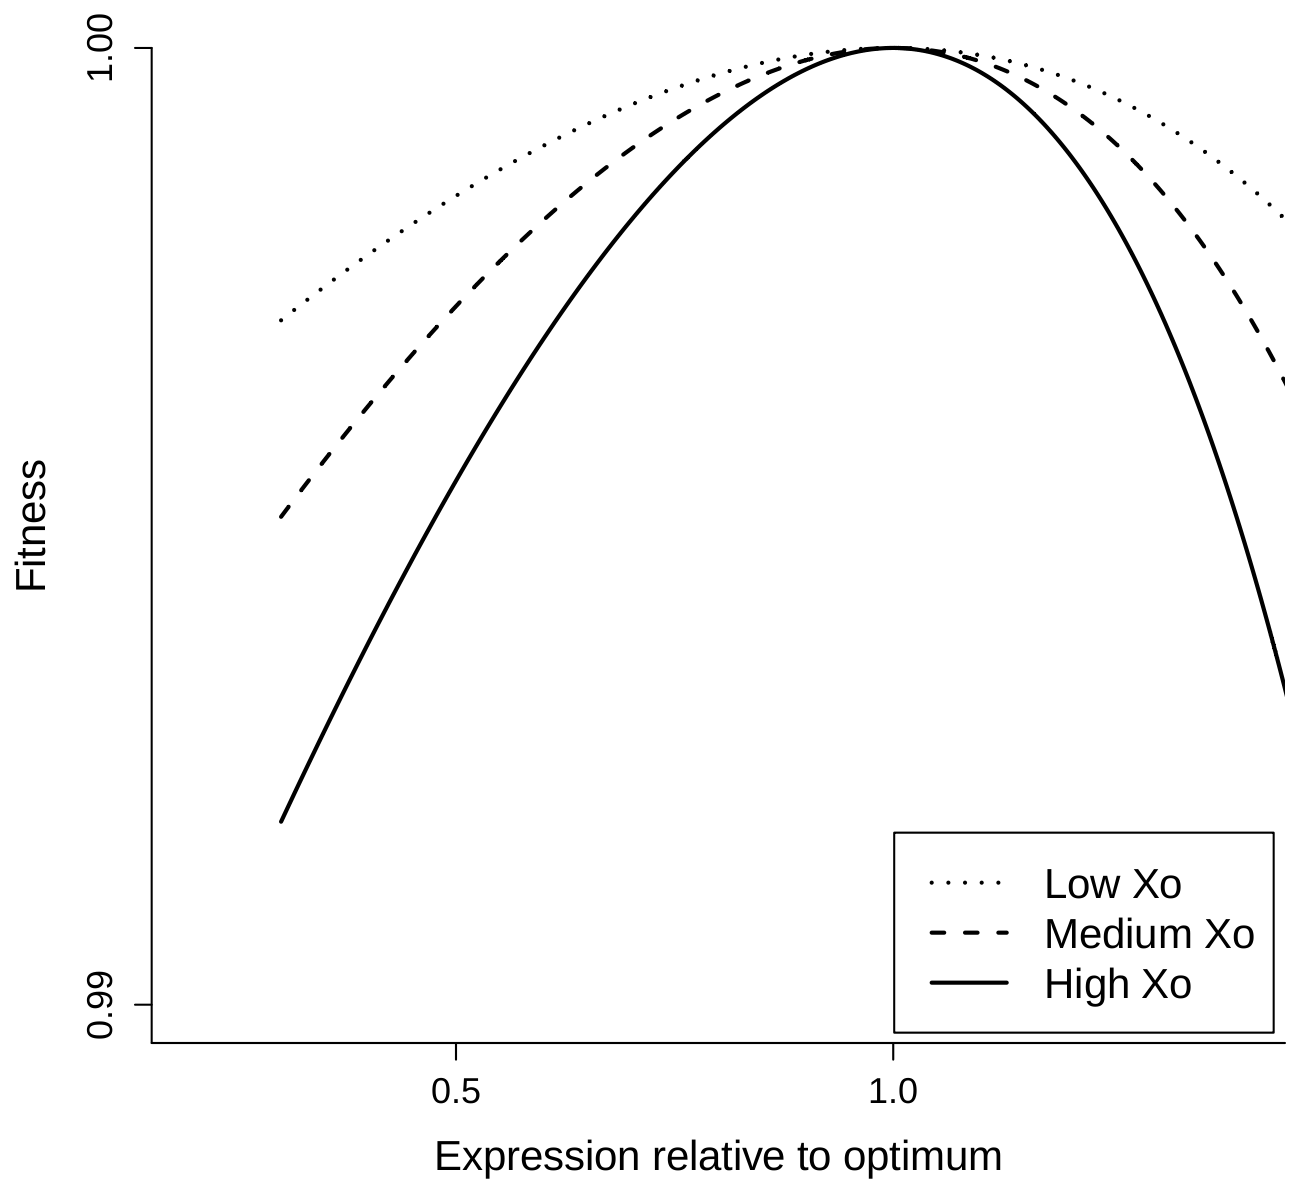 Fitness functions predicted by the COSTEX model for different values of optimal expression levels.